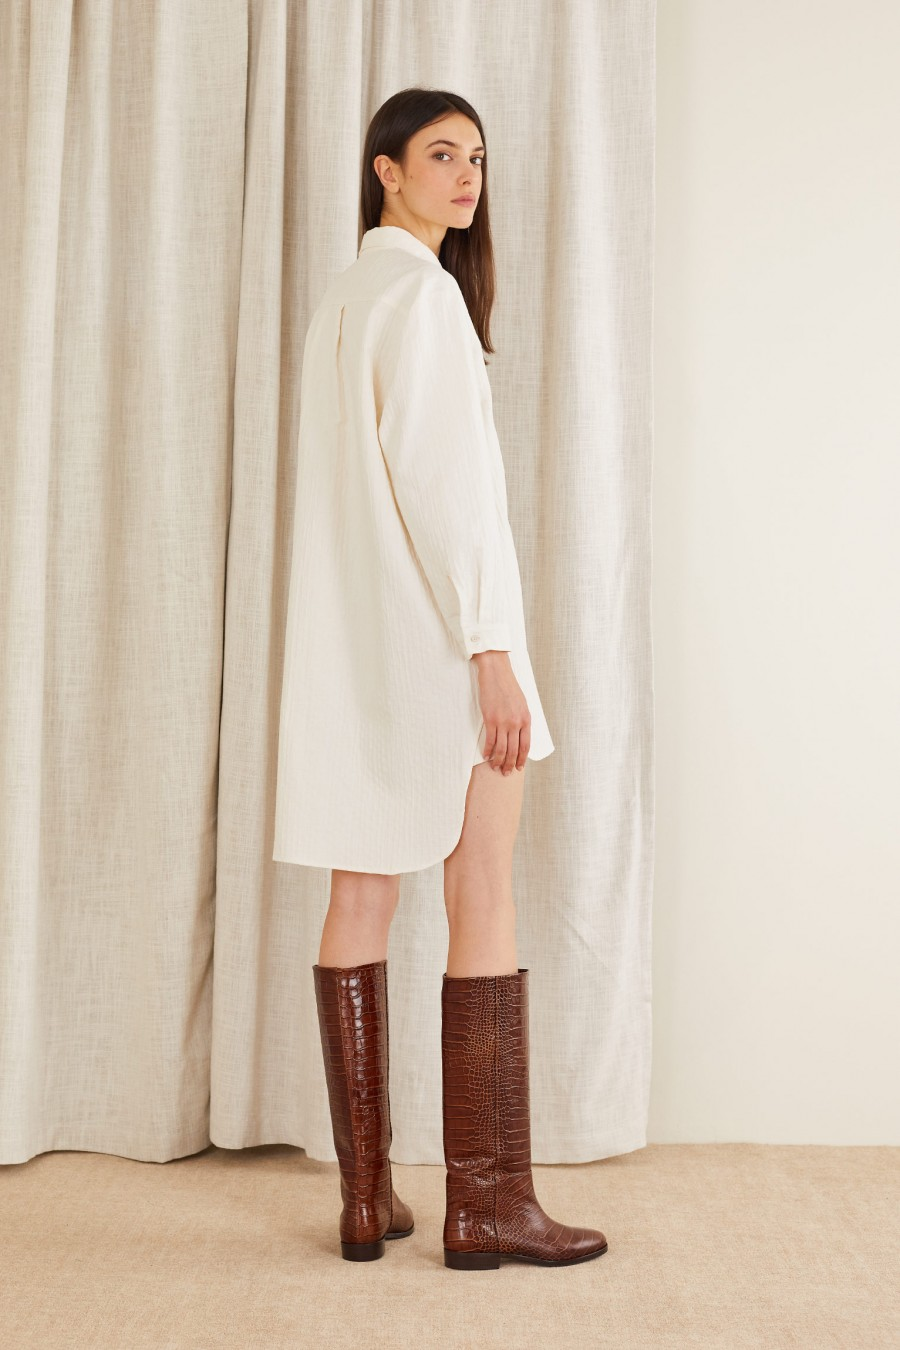 shirt dress with boots for a party